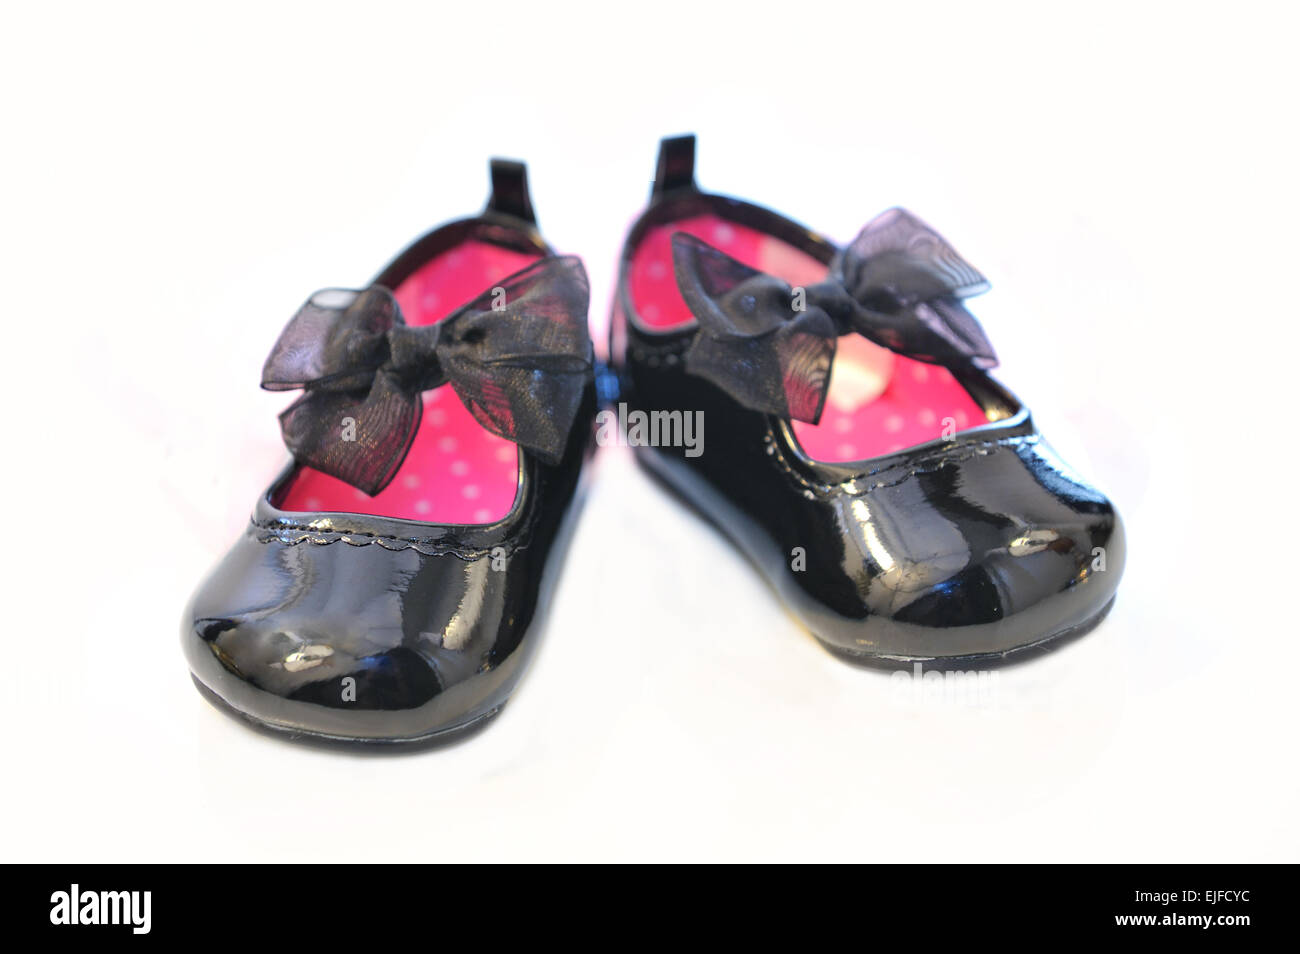 Baby girl's patent leather shoes with black ribbon - Stock Image